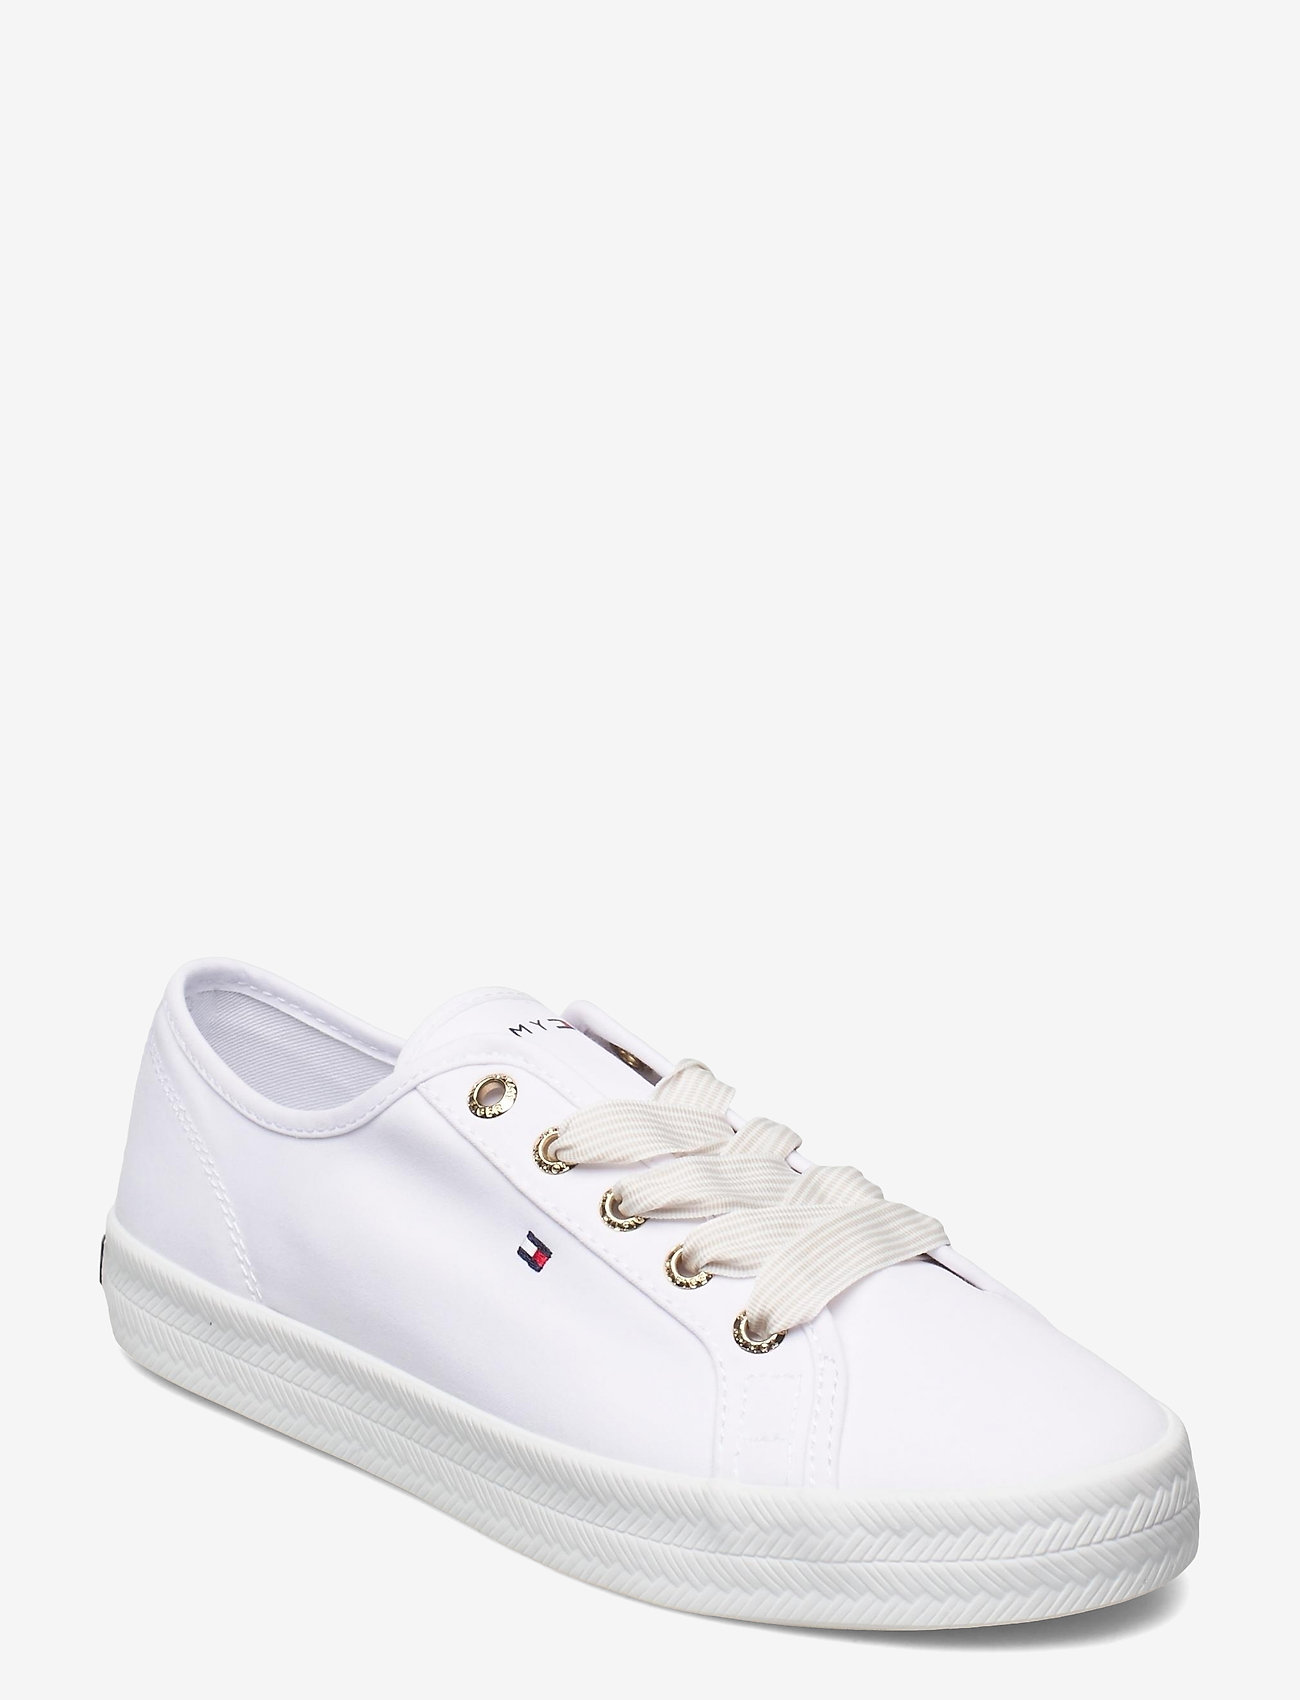 Tommy Hilfiger - ESSENTIAL NAUTICAL SNEAKER - low top sneakers - white - 0